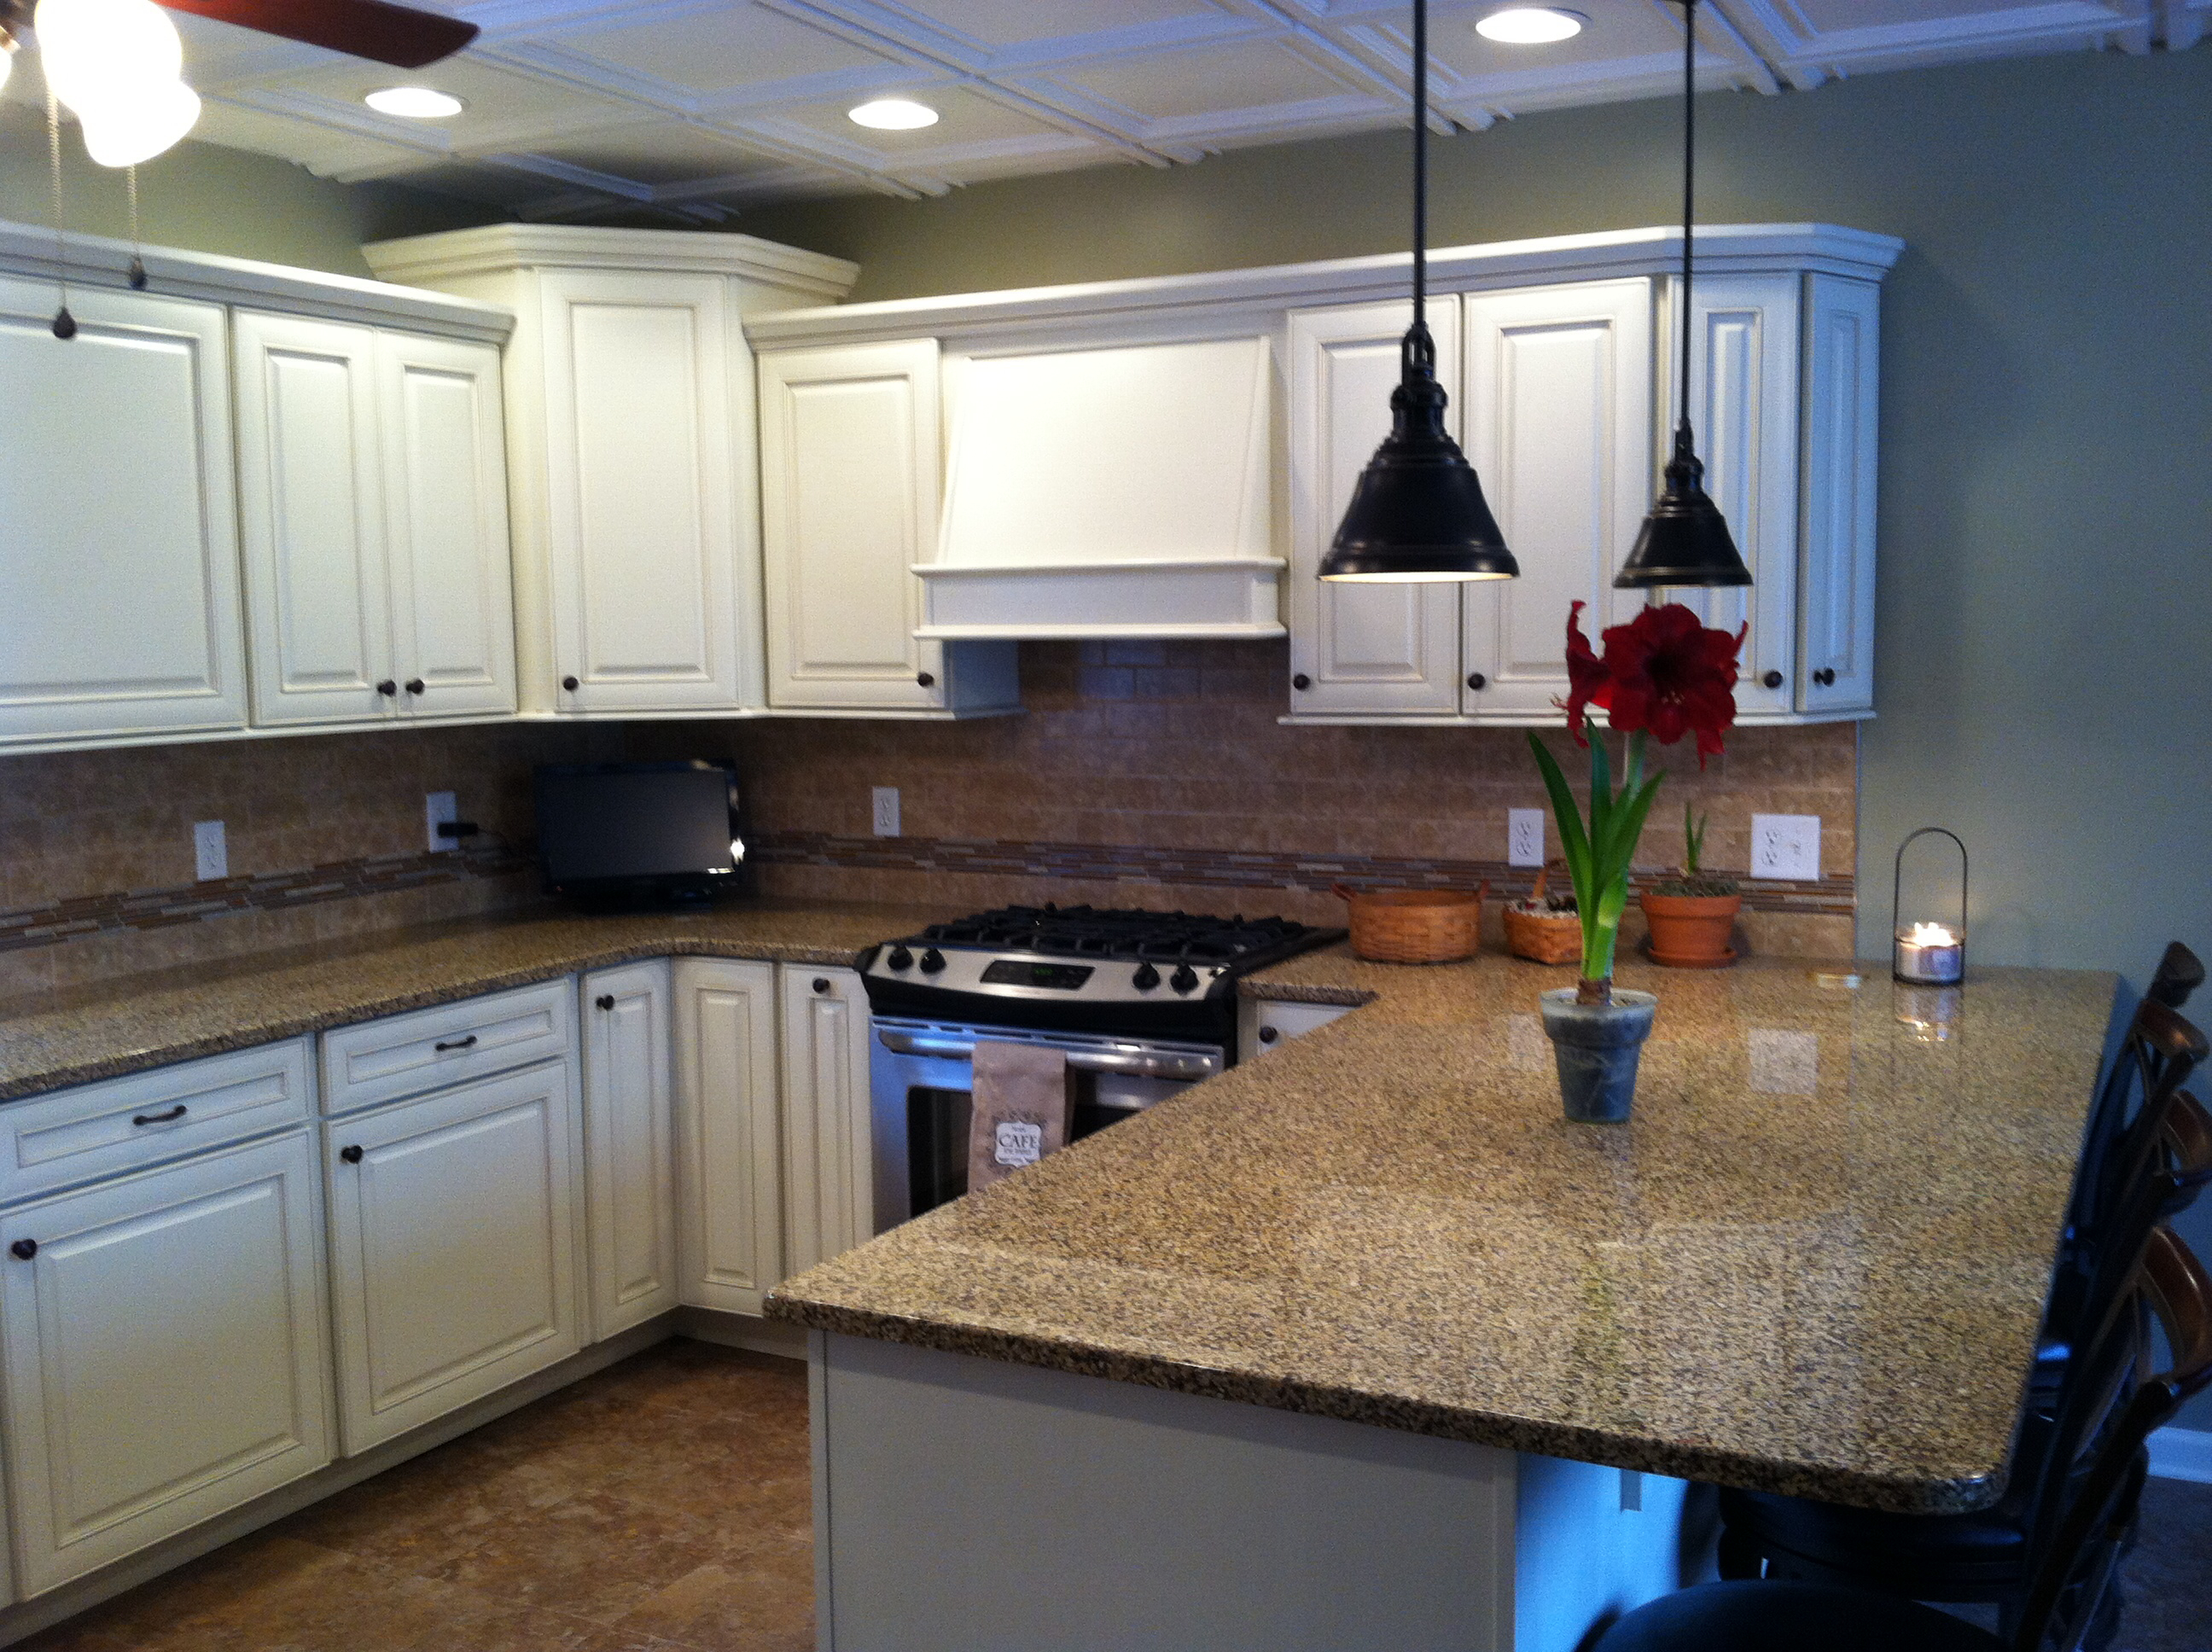 Kitchen Craft Cabinets Review The Quality Of Nor Craft Cabinetry Home And Cabinet Reviews